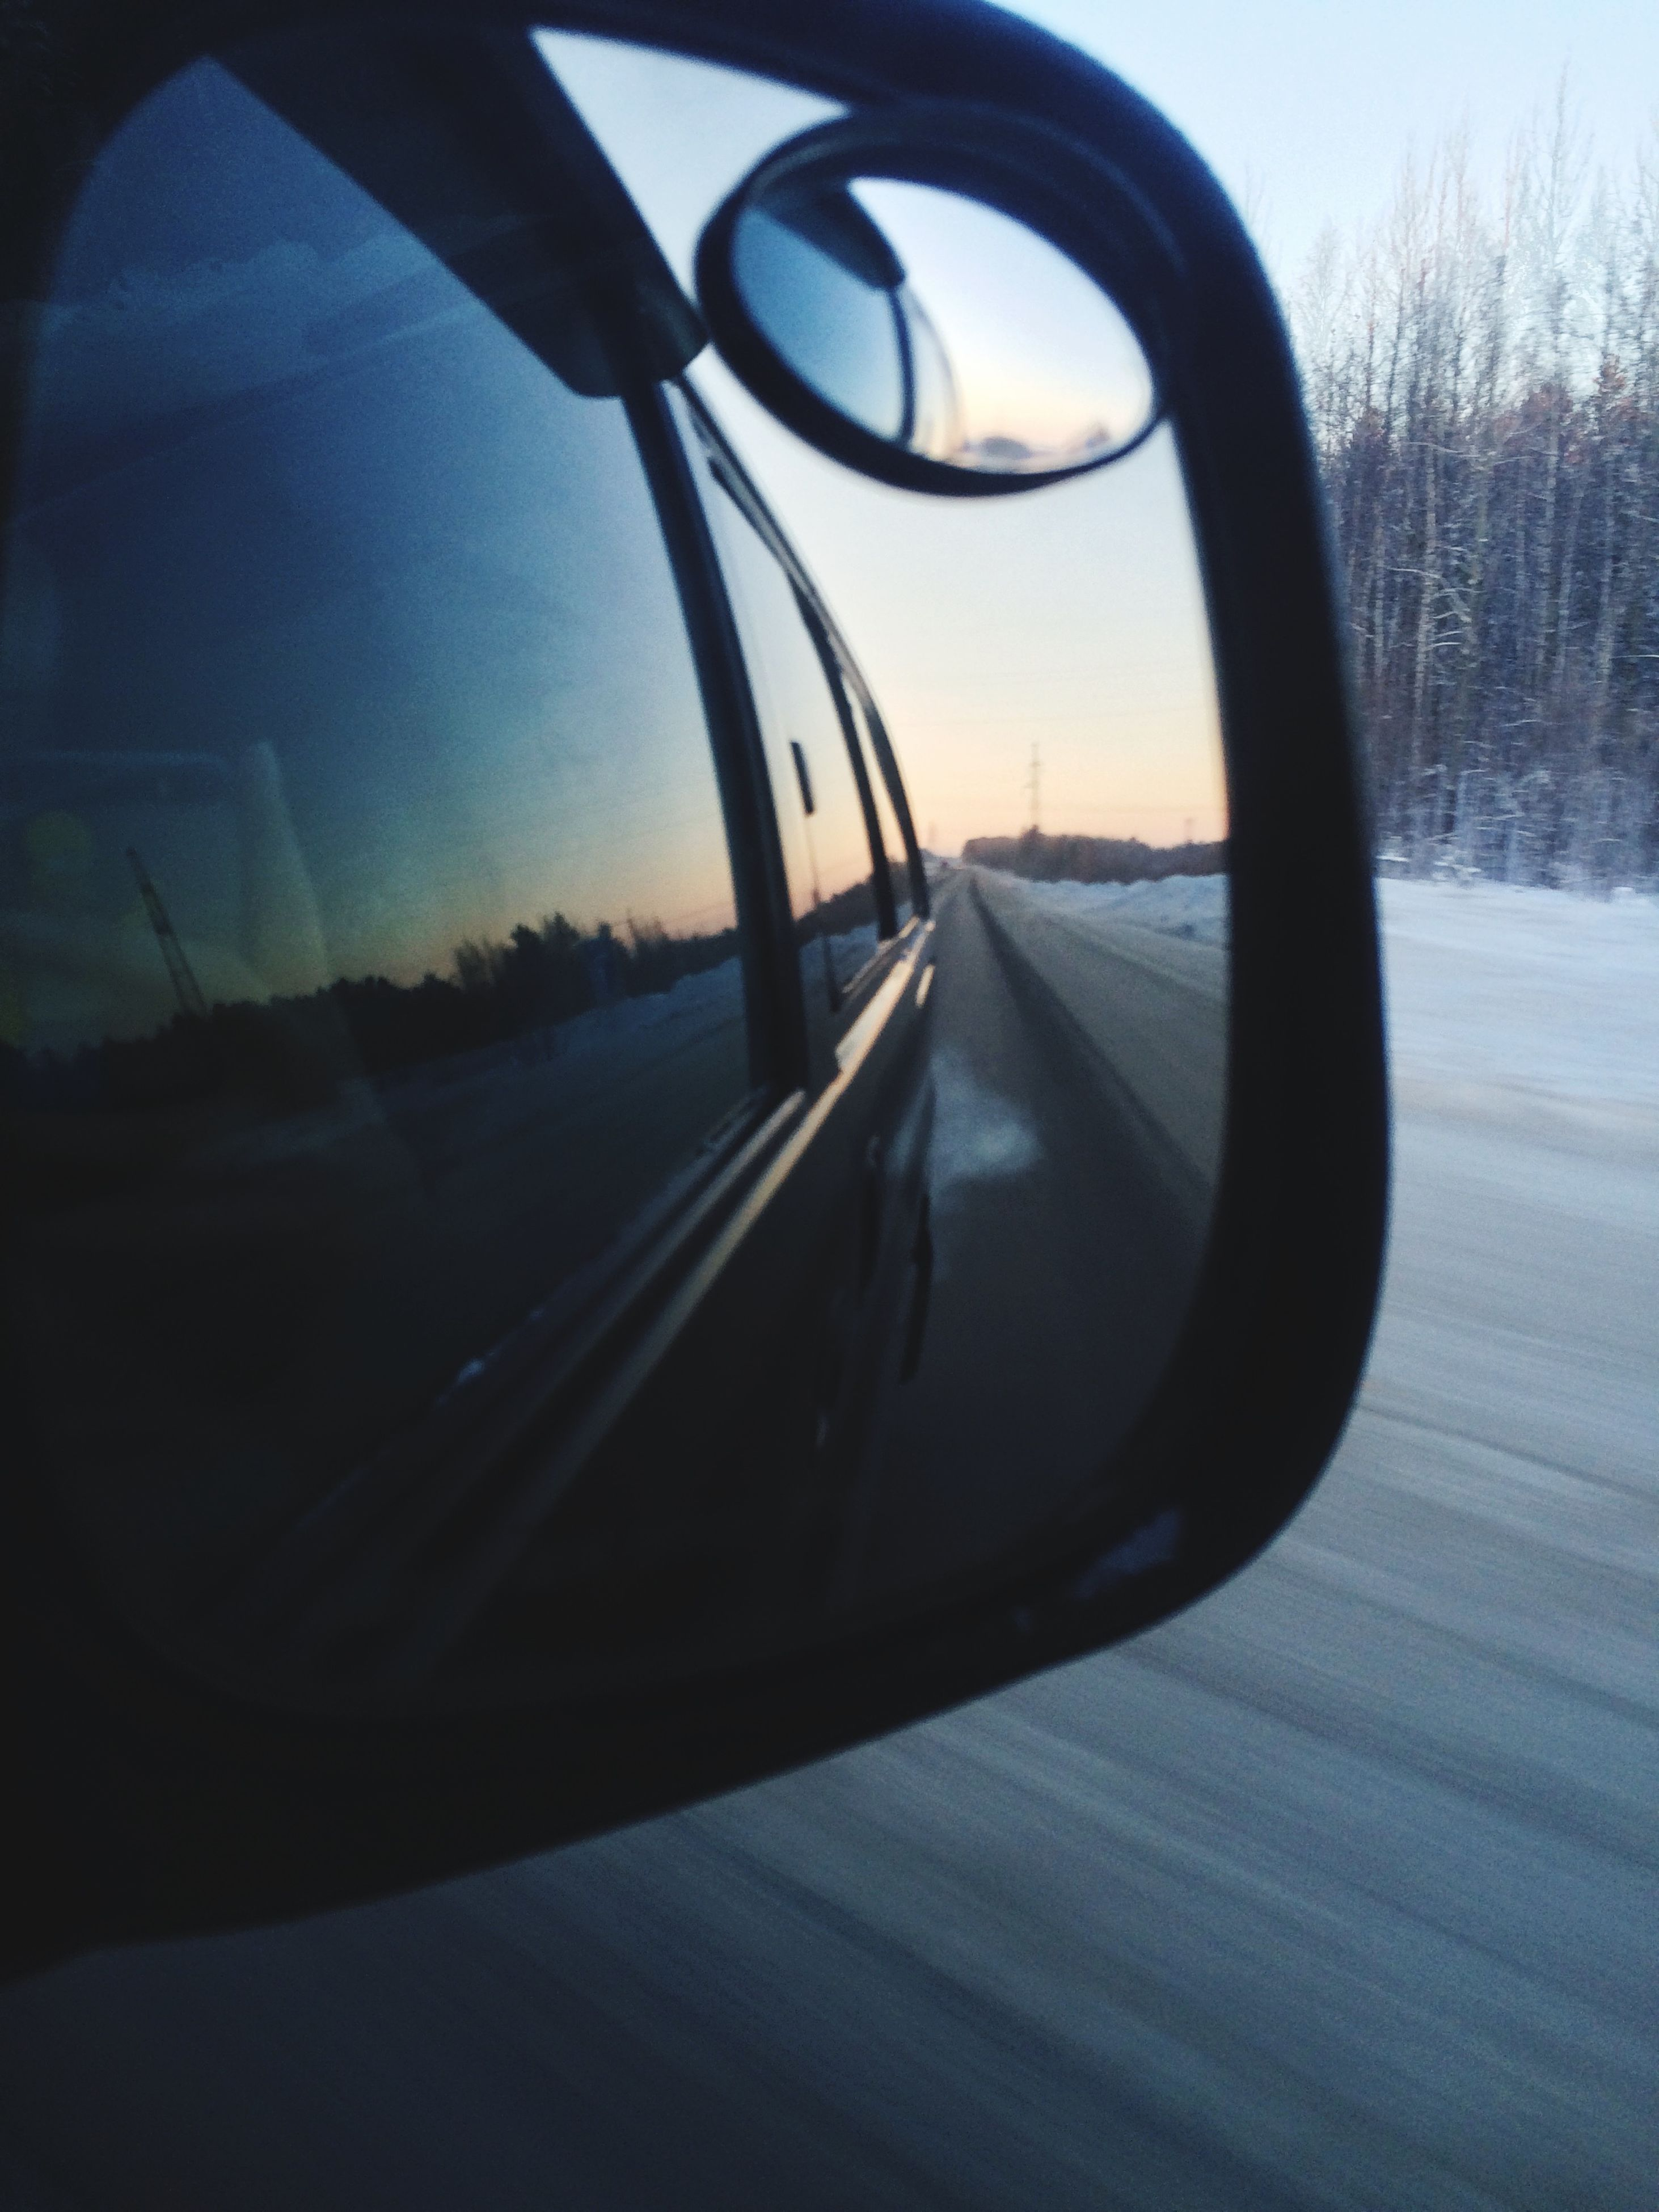 transportation, snow, bare tree, mode of transport, winter, road, cold temperature, car, sky, land vehicle, reflection, tree, close-up, side-view mirror, part of, season, street, no people, auto post production filter, sunlight